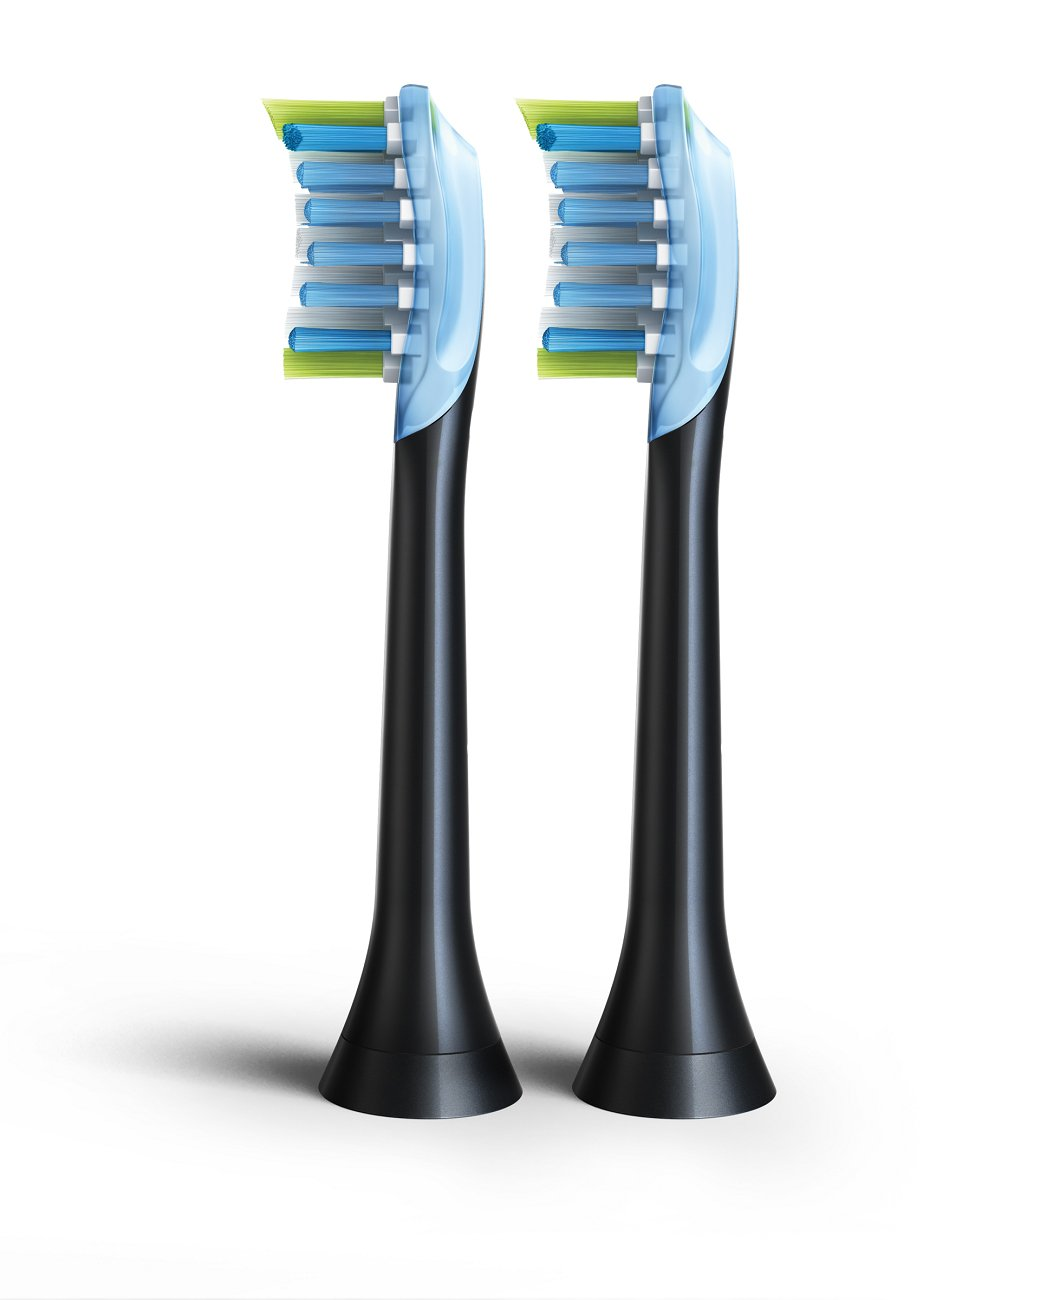 Philips Sonicare Hx9042/94 Adaptive Clean Brush Head, Black, 2 Count by Philips Sonicare (Image #4)